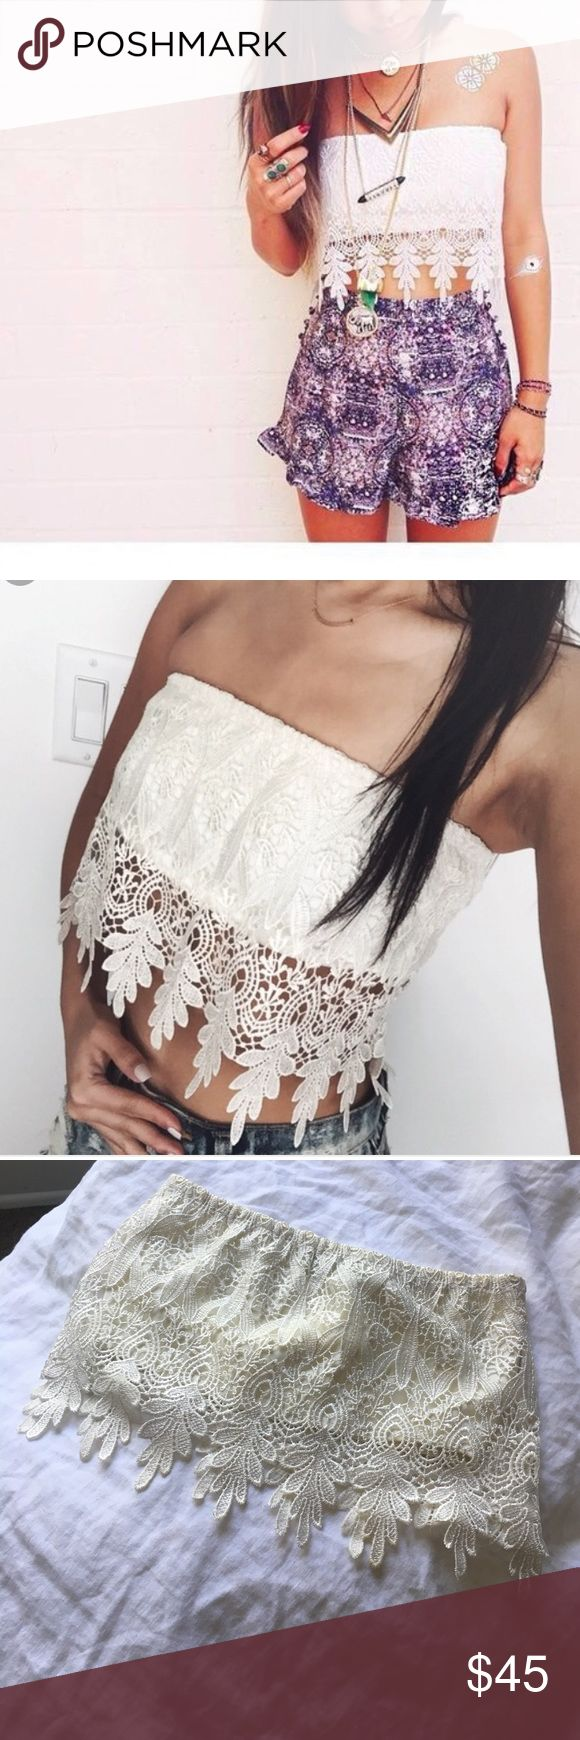 LF Paper Heart Crochet Tube Top - XS (aus-6) Cute crotchet tube top perfect for festivals and summer! Only worn once and in perfect condition. It is an Australian size 6 which is an XS and fits snug around chest. LF Tops Crop Tops